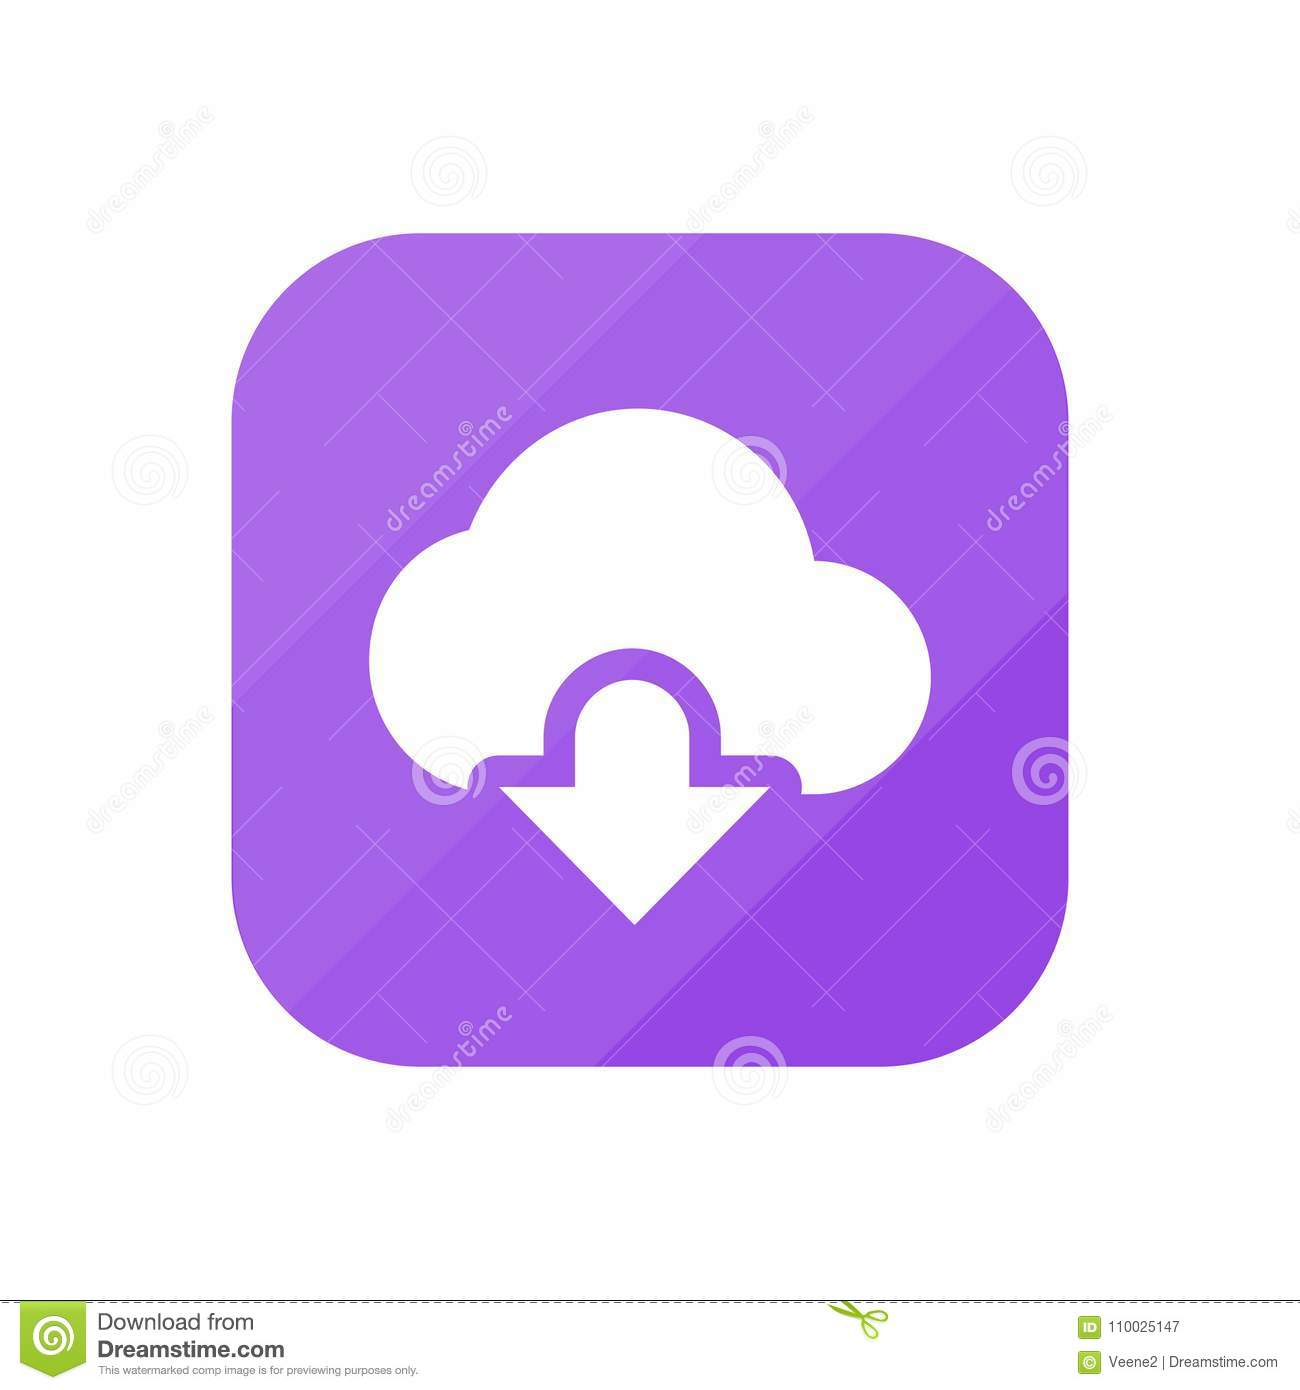 Wolkendownload - App Pictogram